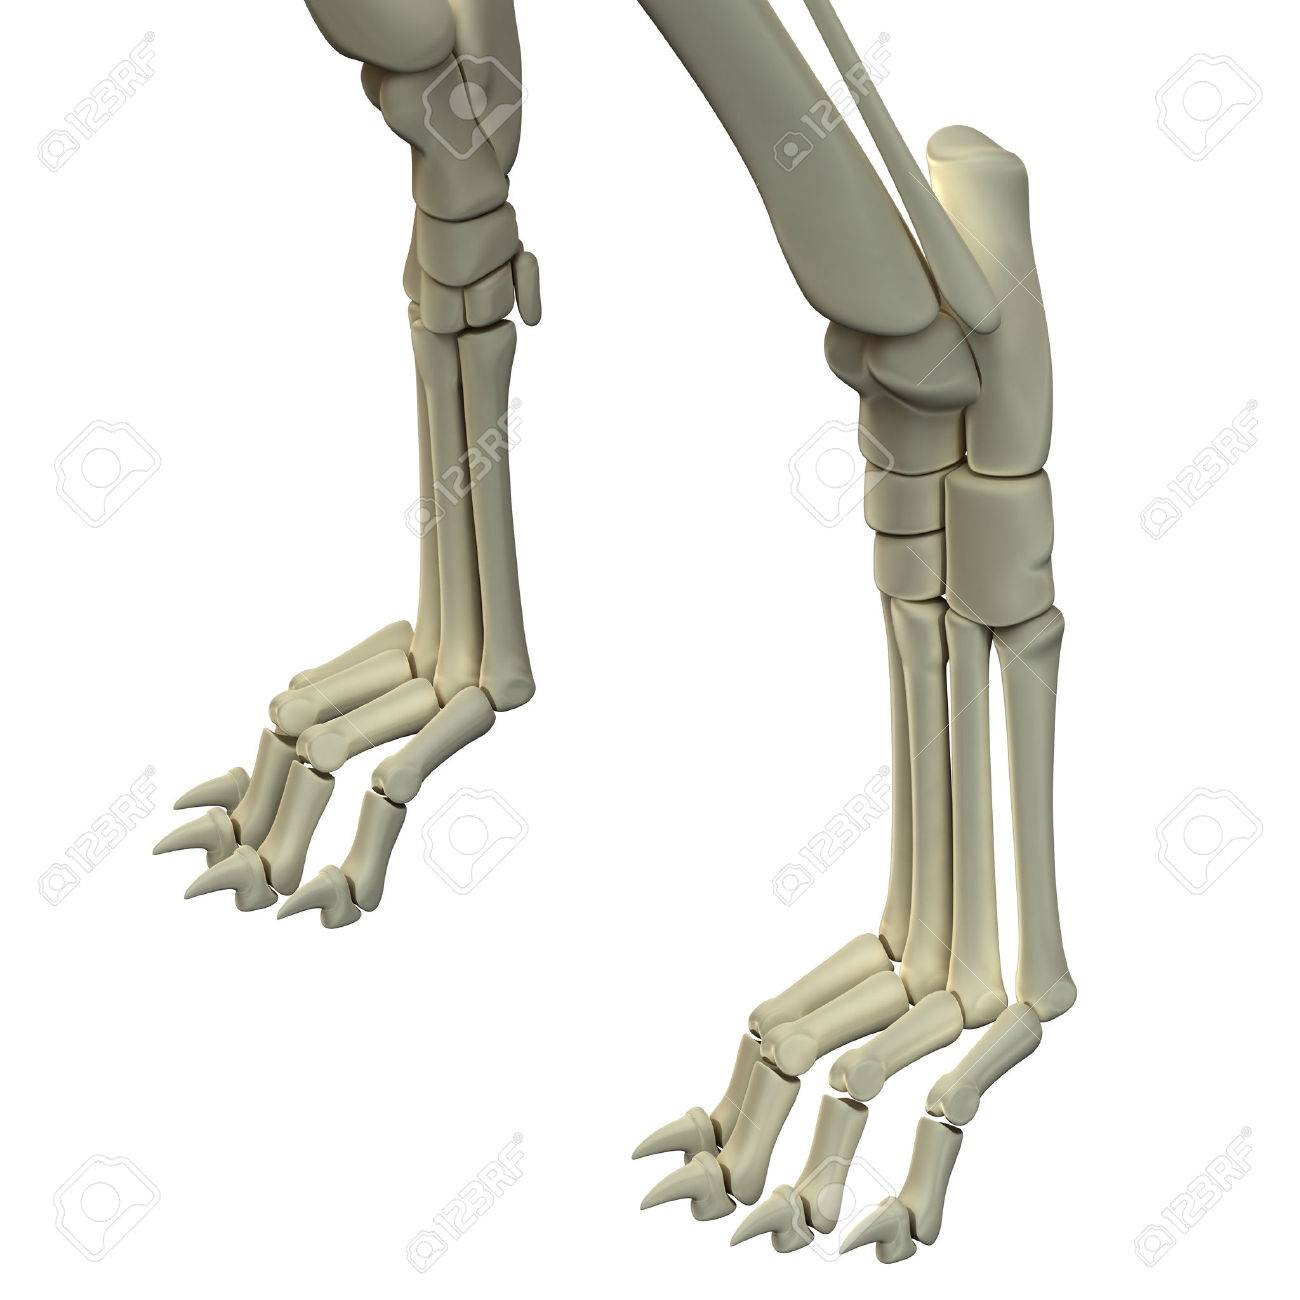 Dog Front Legs Anatomy Bones Stock Photo, Picture And Royalty Free ...